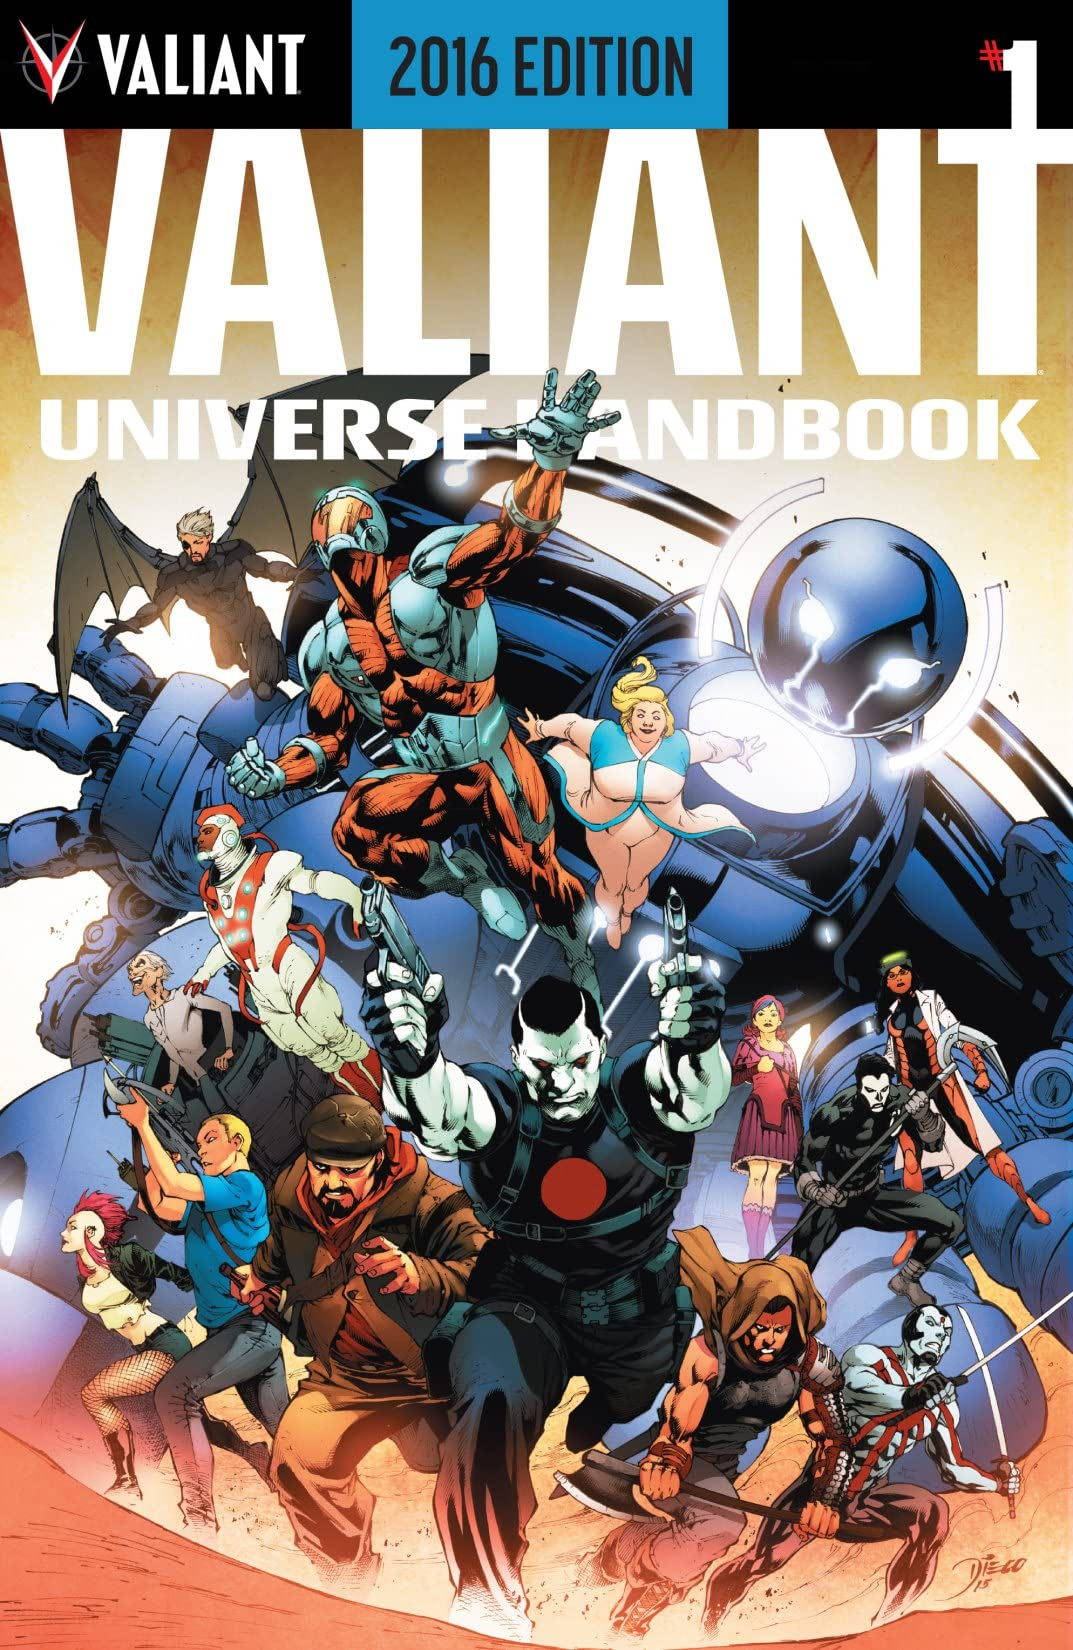 Valiant Universe Handbook: 2016 Edition #1: Digital Exclusives Edition